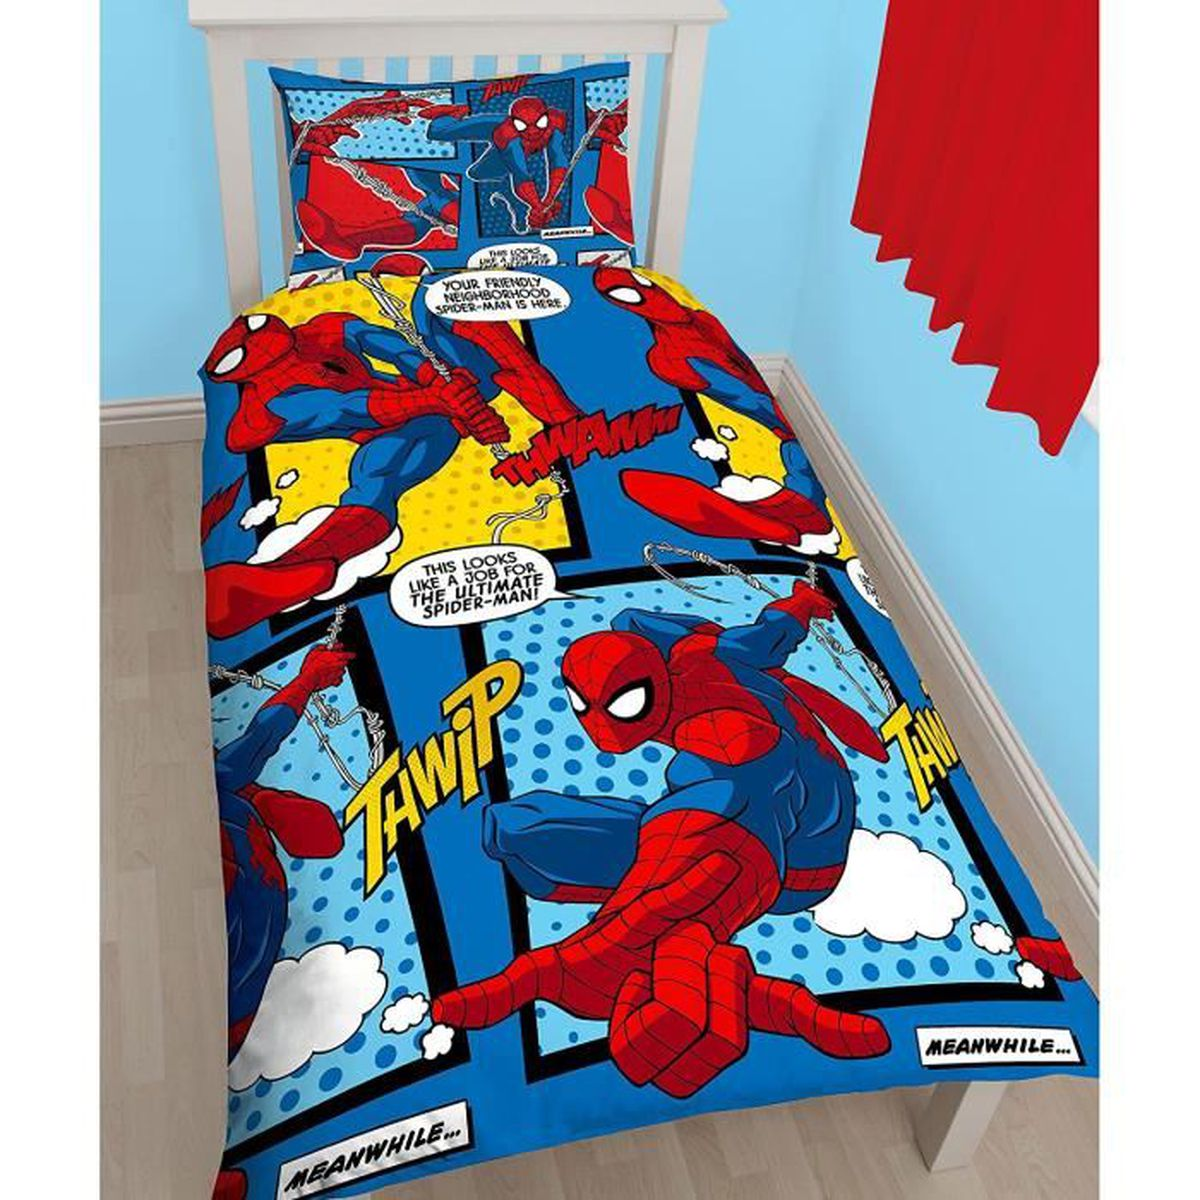 lit spiderman achat vente lit spiderman pas cher les soldes sur cdiscount cdiscount. Black Bedroom Furniture Sets. Home Design Ideas